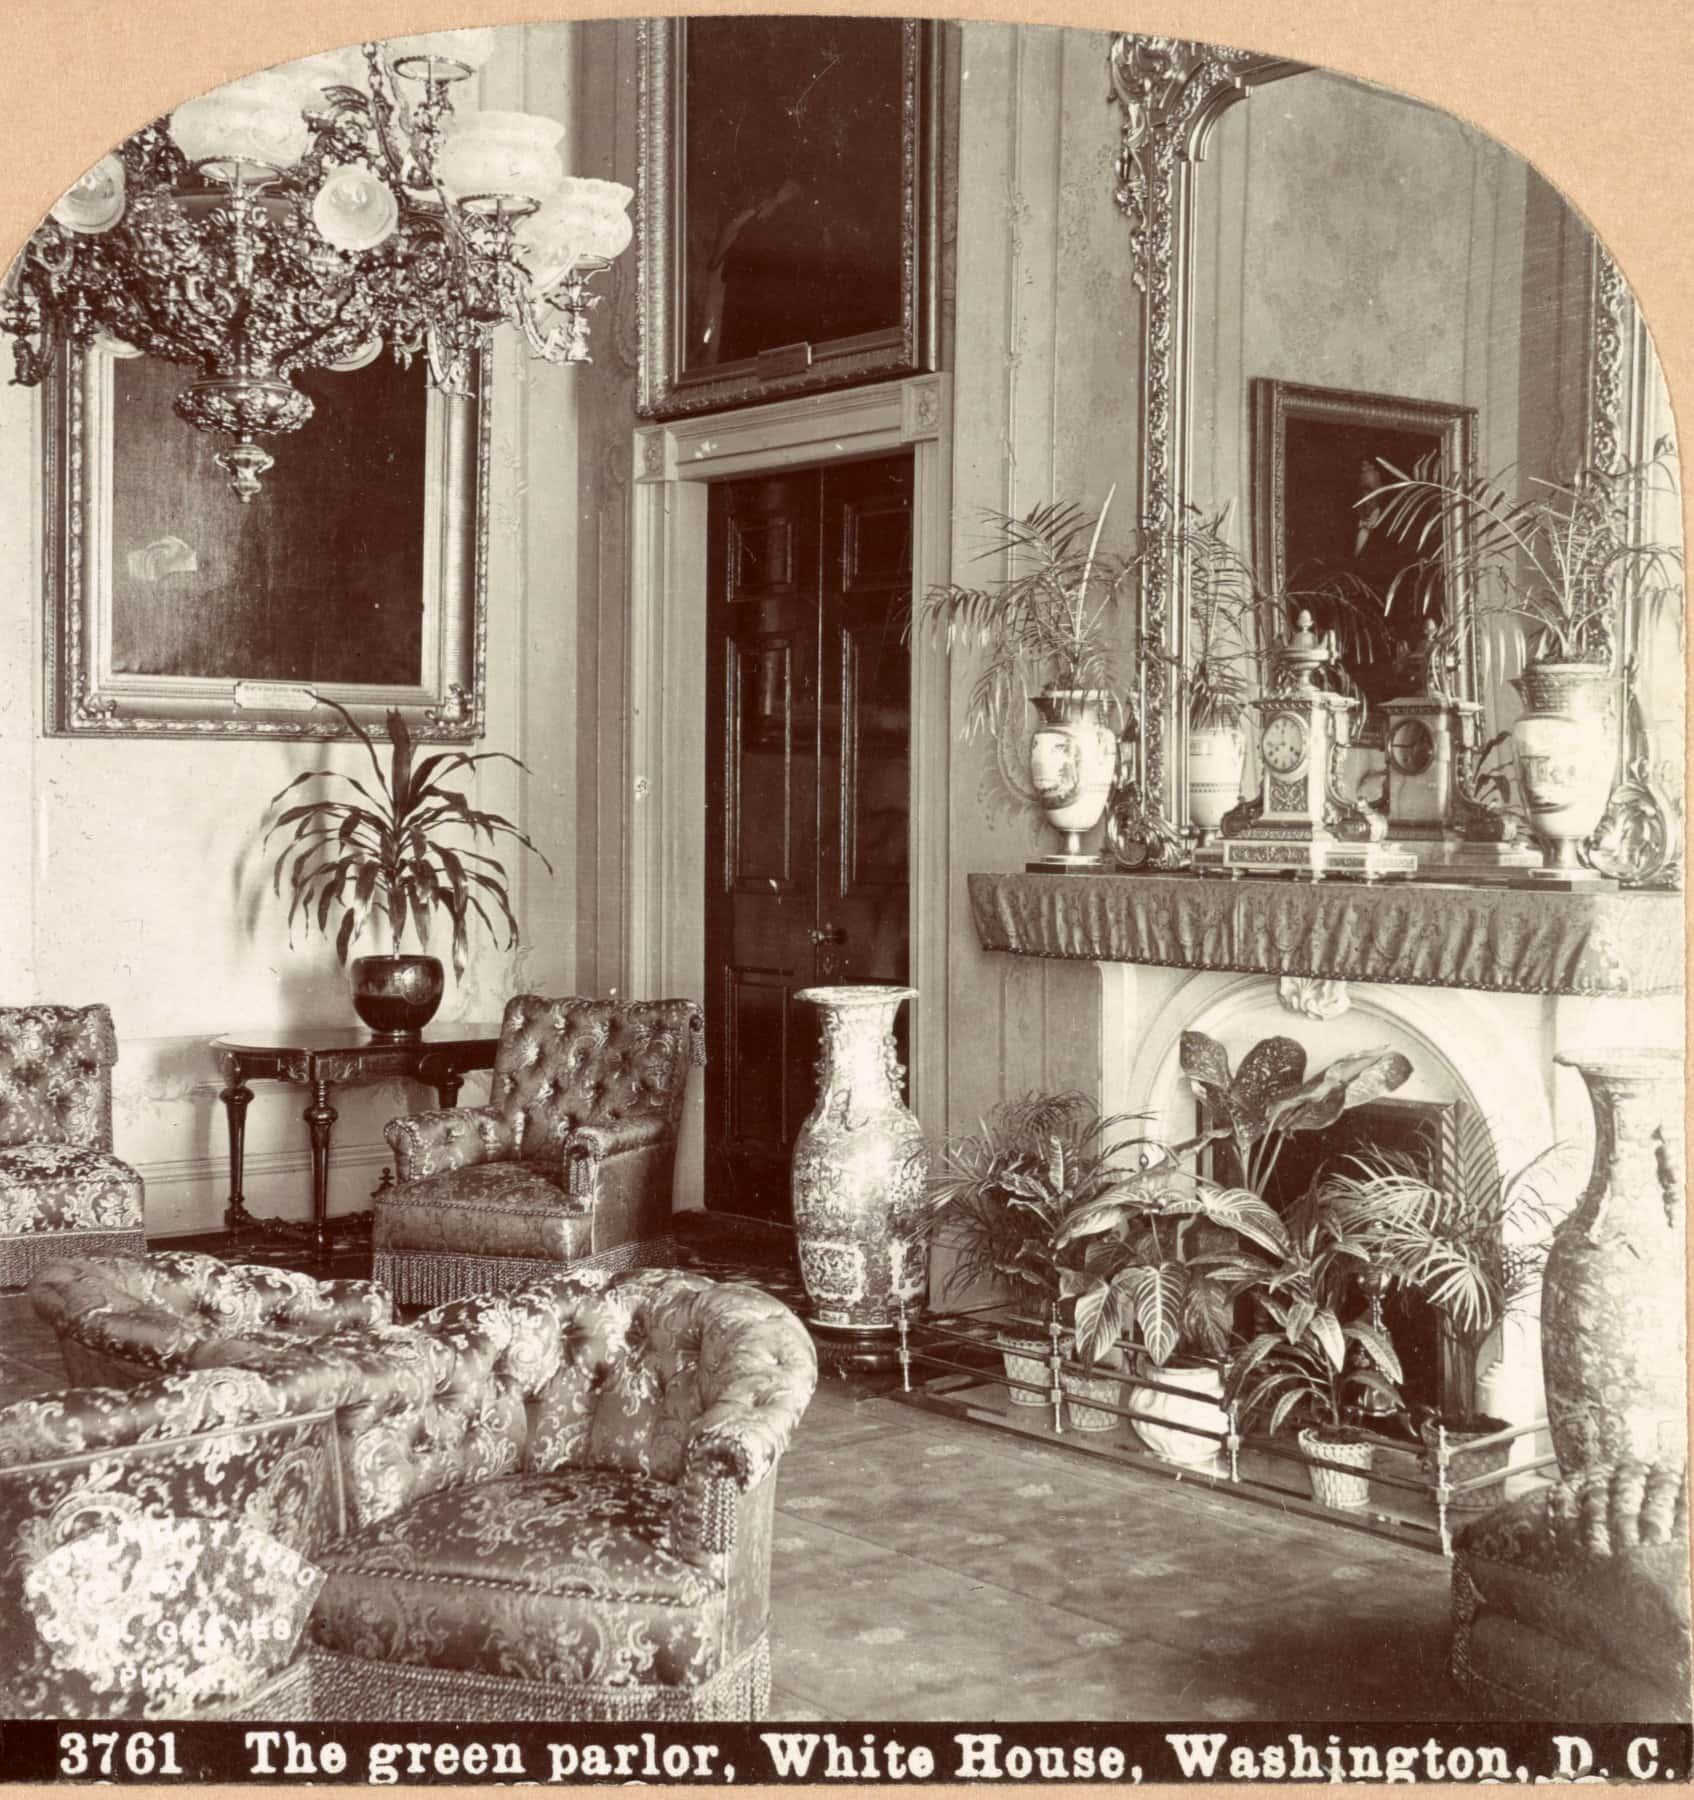 The green parlor, White House, Washington, DC (1900)